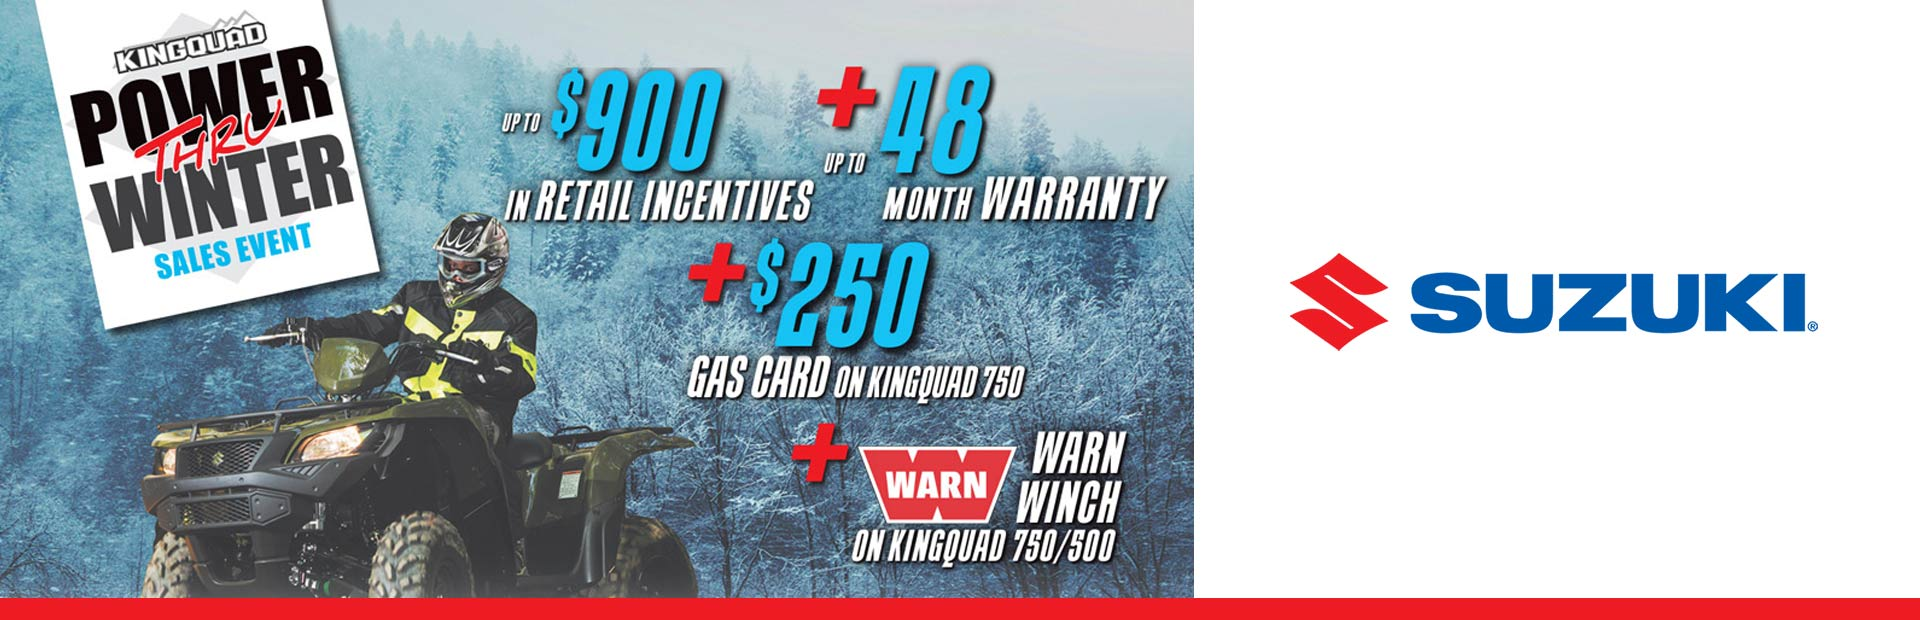 Suzuki: Power Thru Winter Sales Event